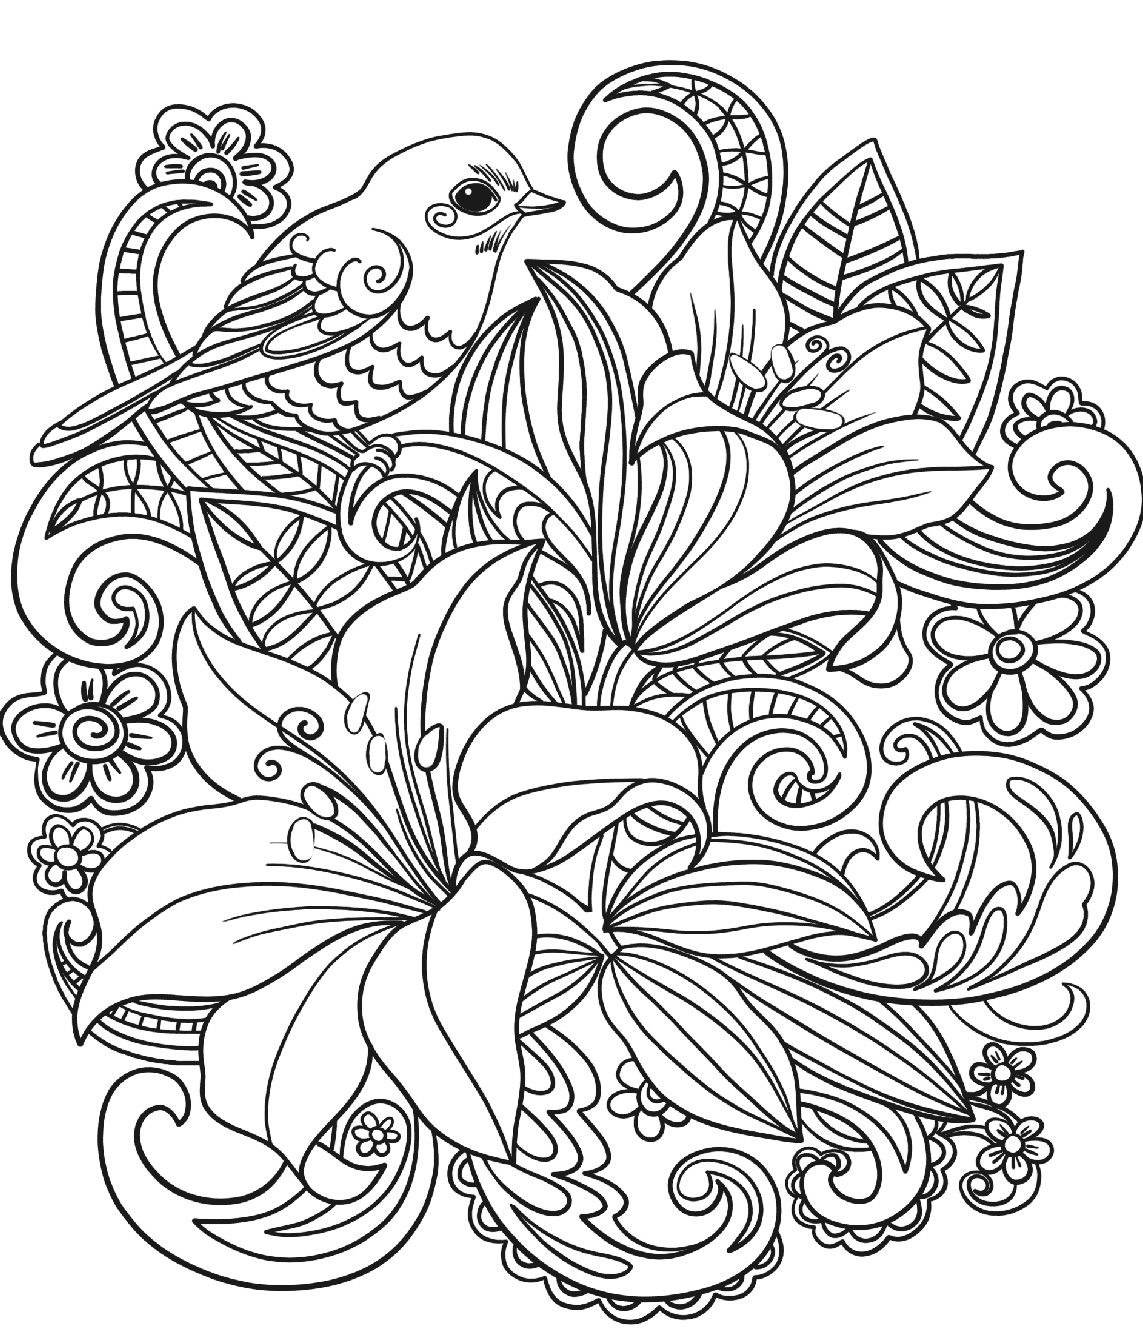 adult coloring pages flowers adult coloring a tangle of flowers set of 8 by emerlyearts adult coloring pages flowers